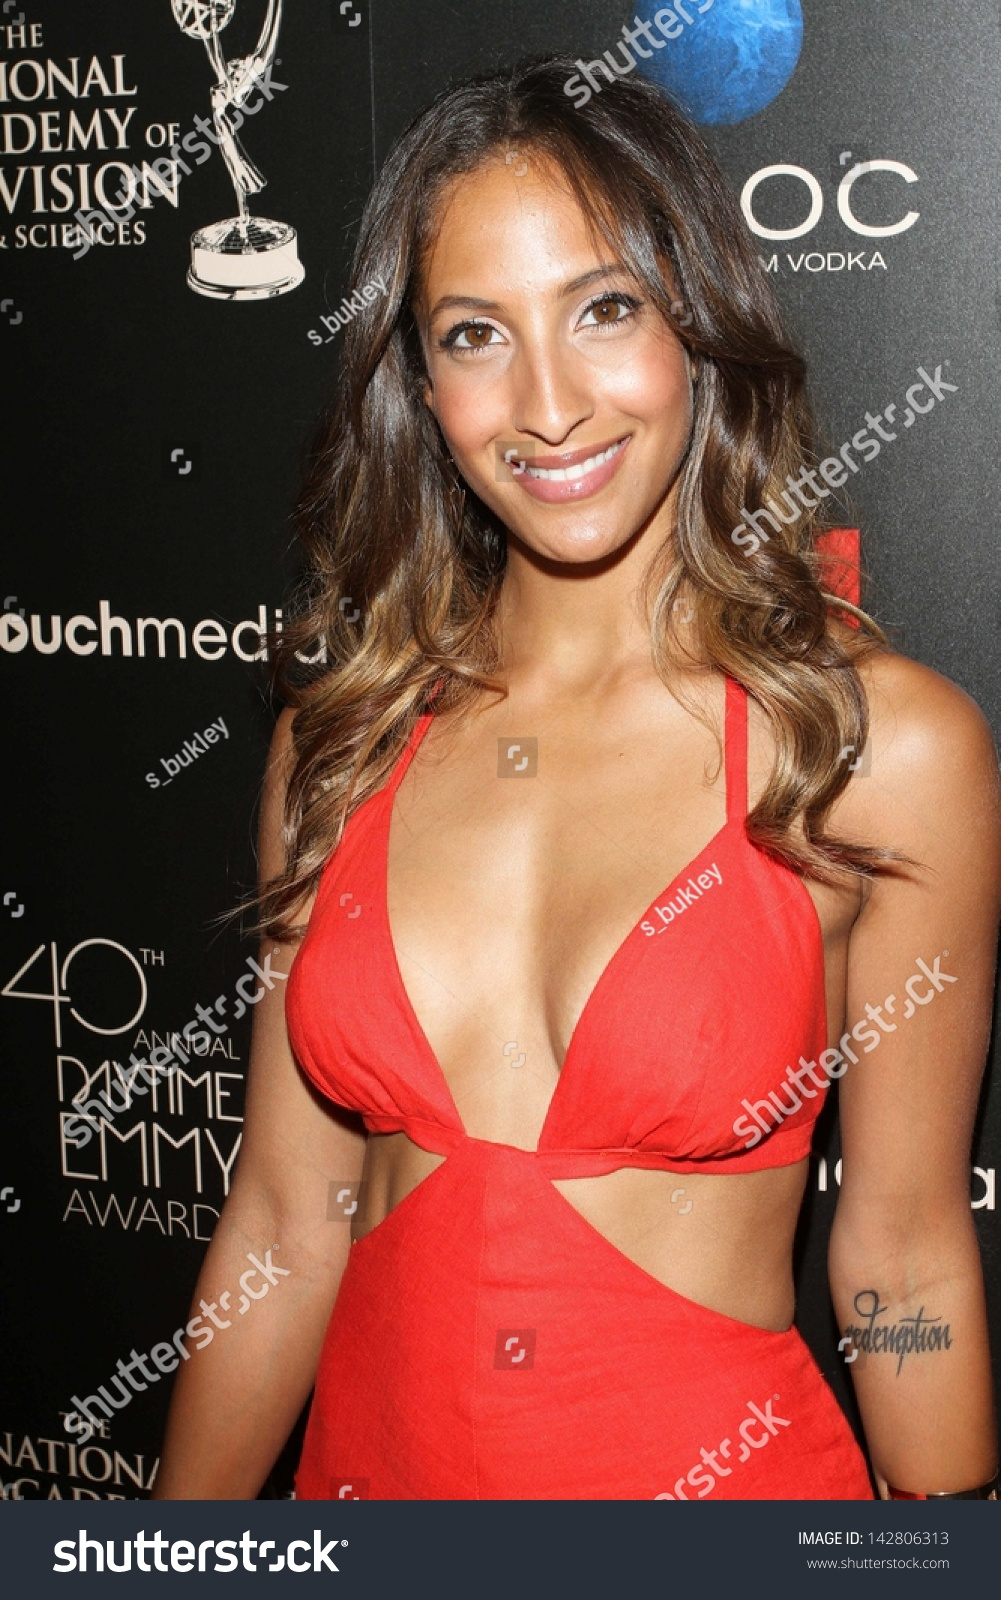 christel khalil parentschristel khalil son, christel khalil parents, christel khalil mother, christel khalil father, christel khalil family, christel khalil age, christel khalil salary, christel khalil husband, christel khalil twitter, christel khalil tattoos, christel khalil net worth, christel khalil instagram, christel khalil facebook, christel khalil siblings, christel khalil mother and father, christel khalil biography, christel khalil imdb, christel khalil diet, christel khalil house, christel khalil sister